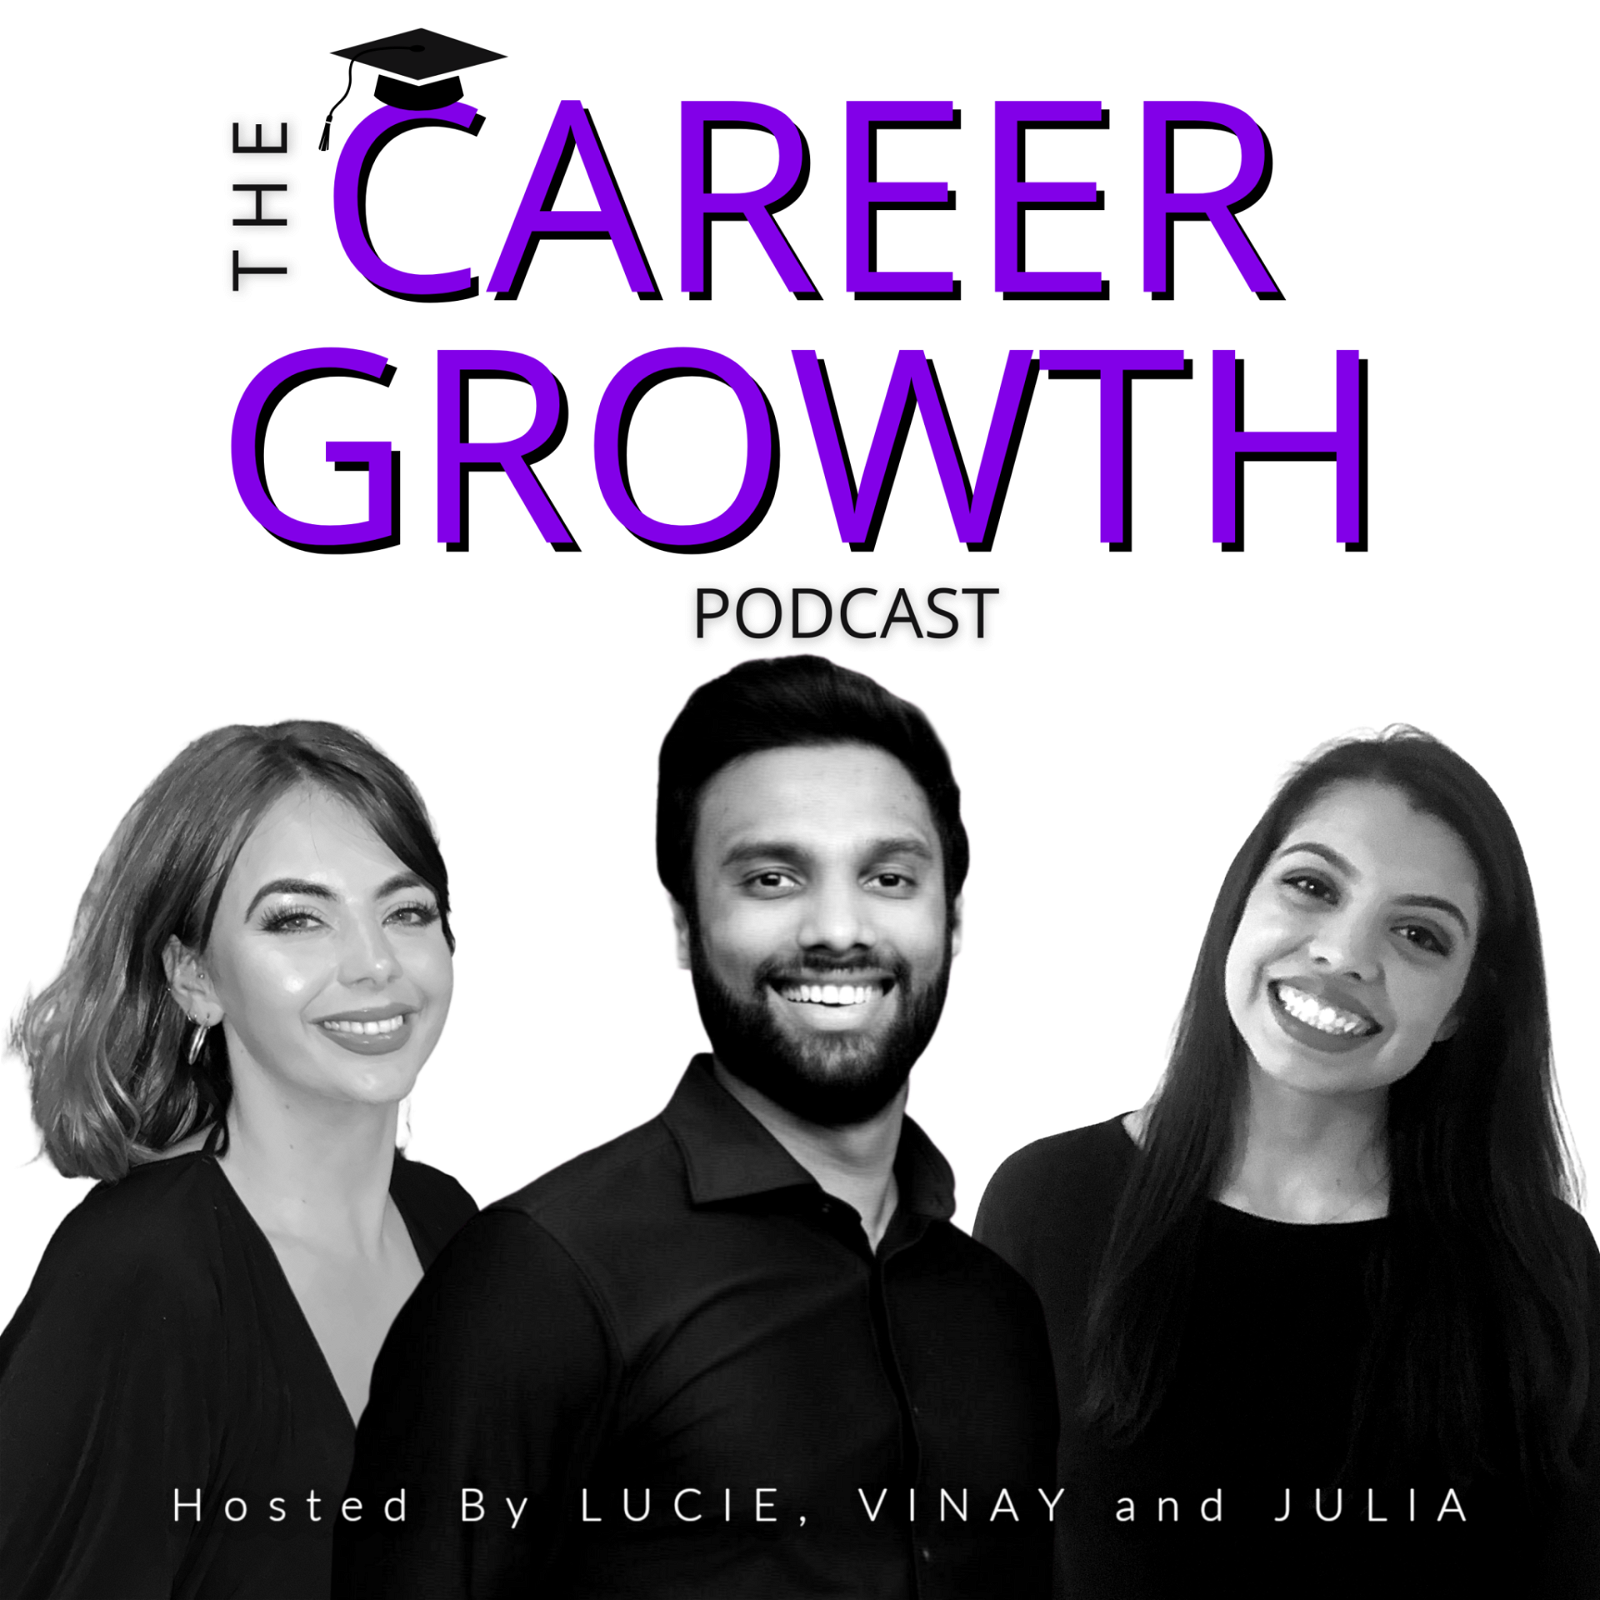 The Career Growth Podcast